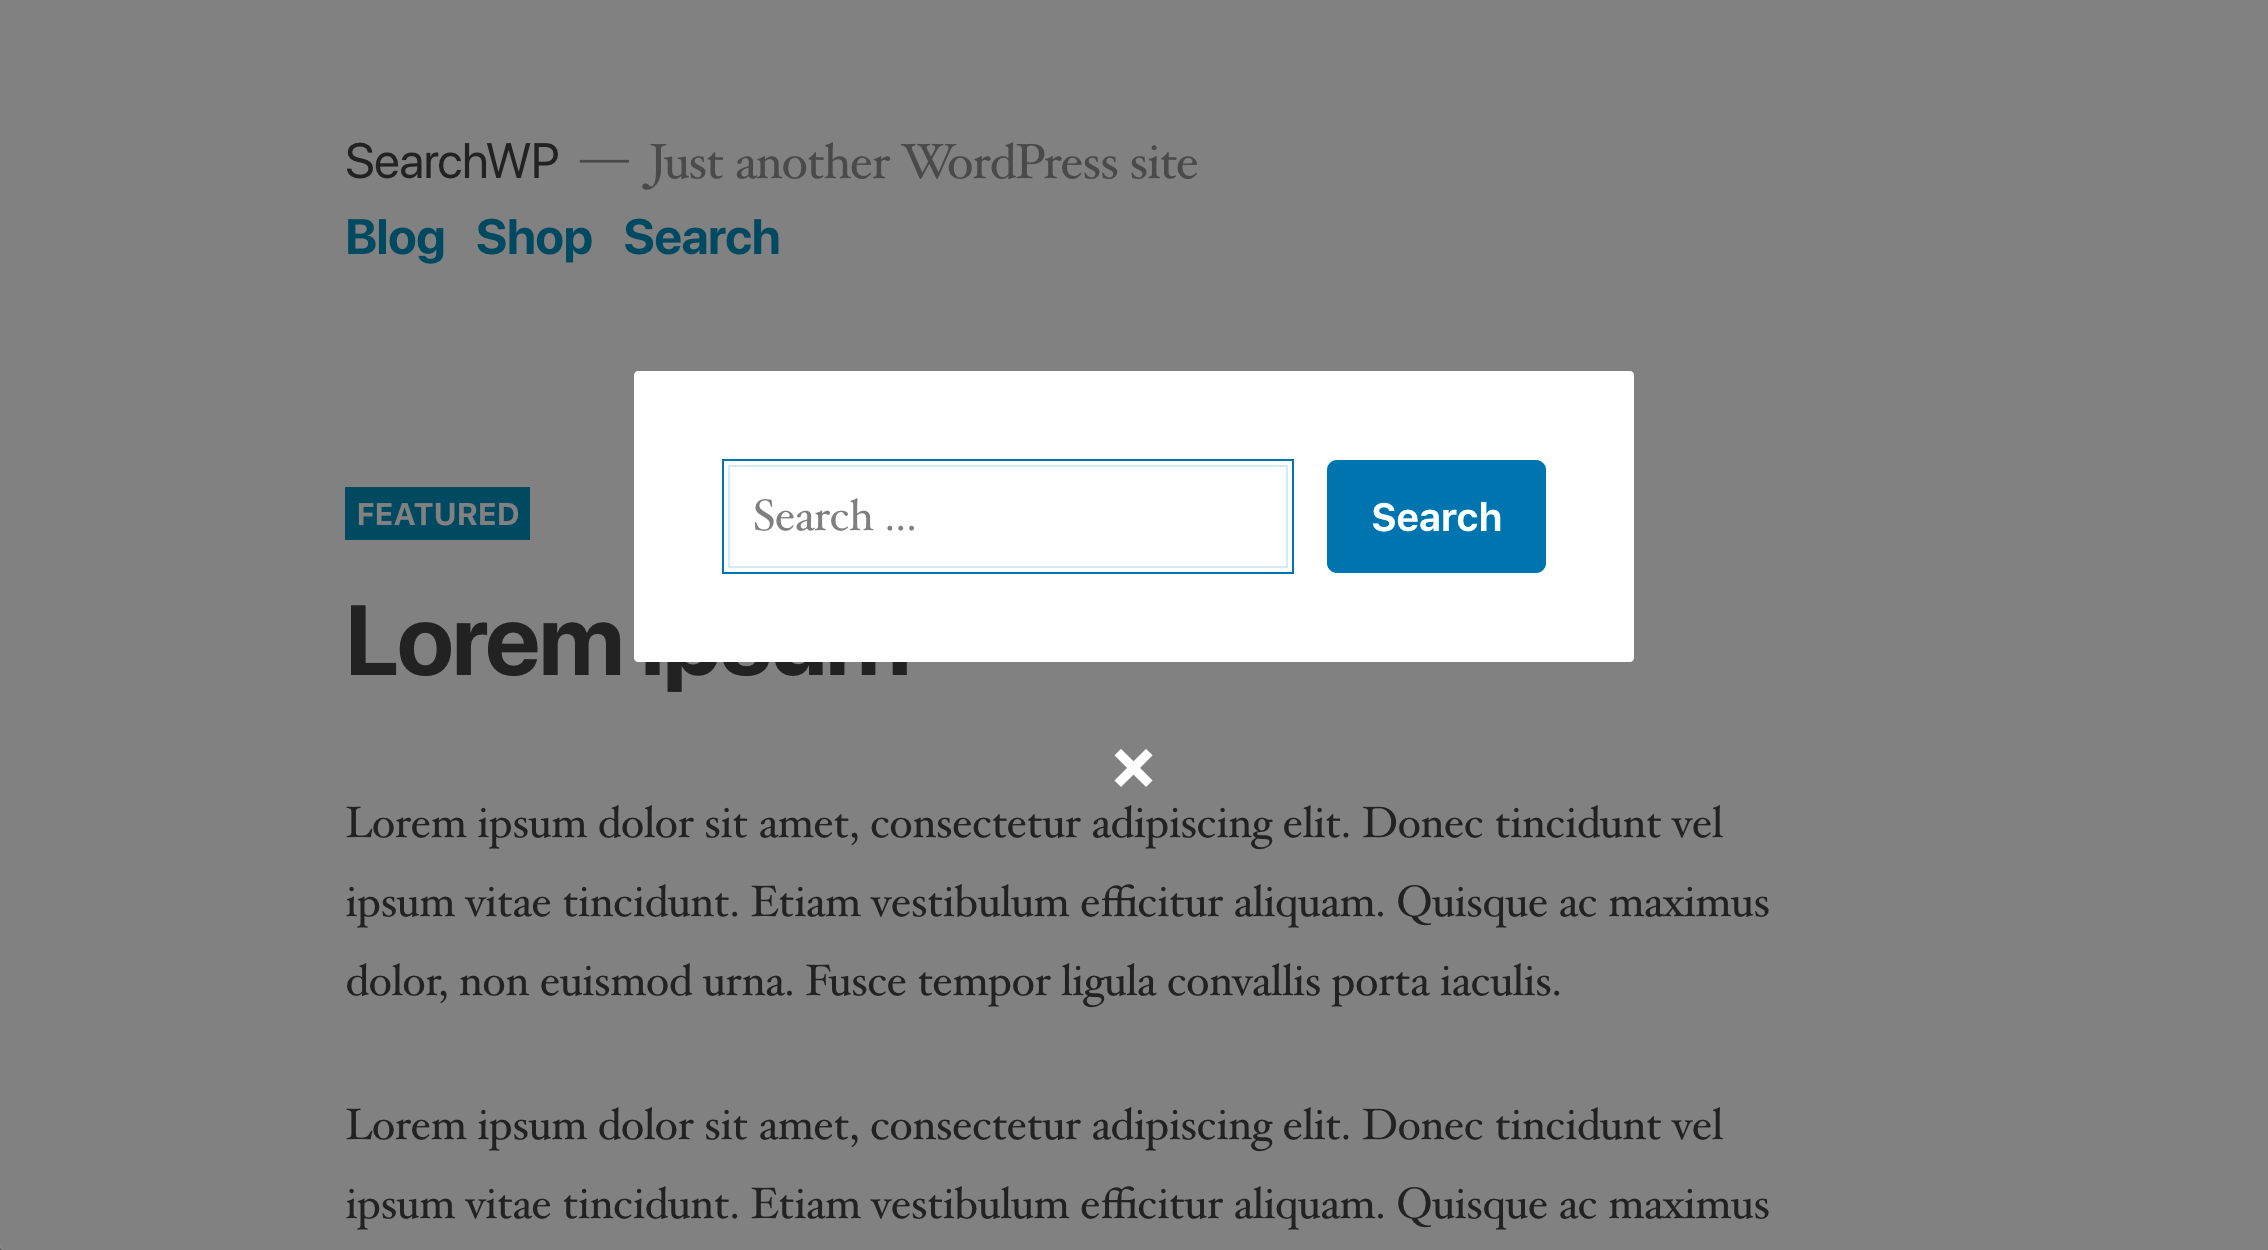 SearchWP Modal Search Form adapts to your theme